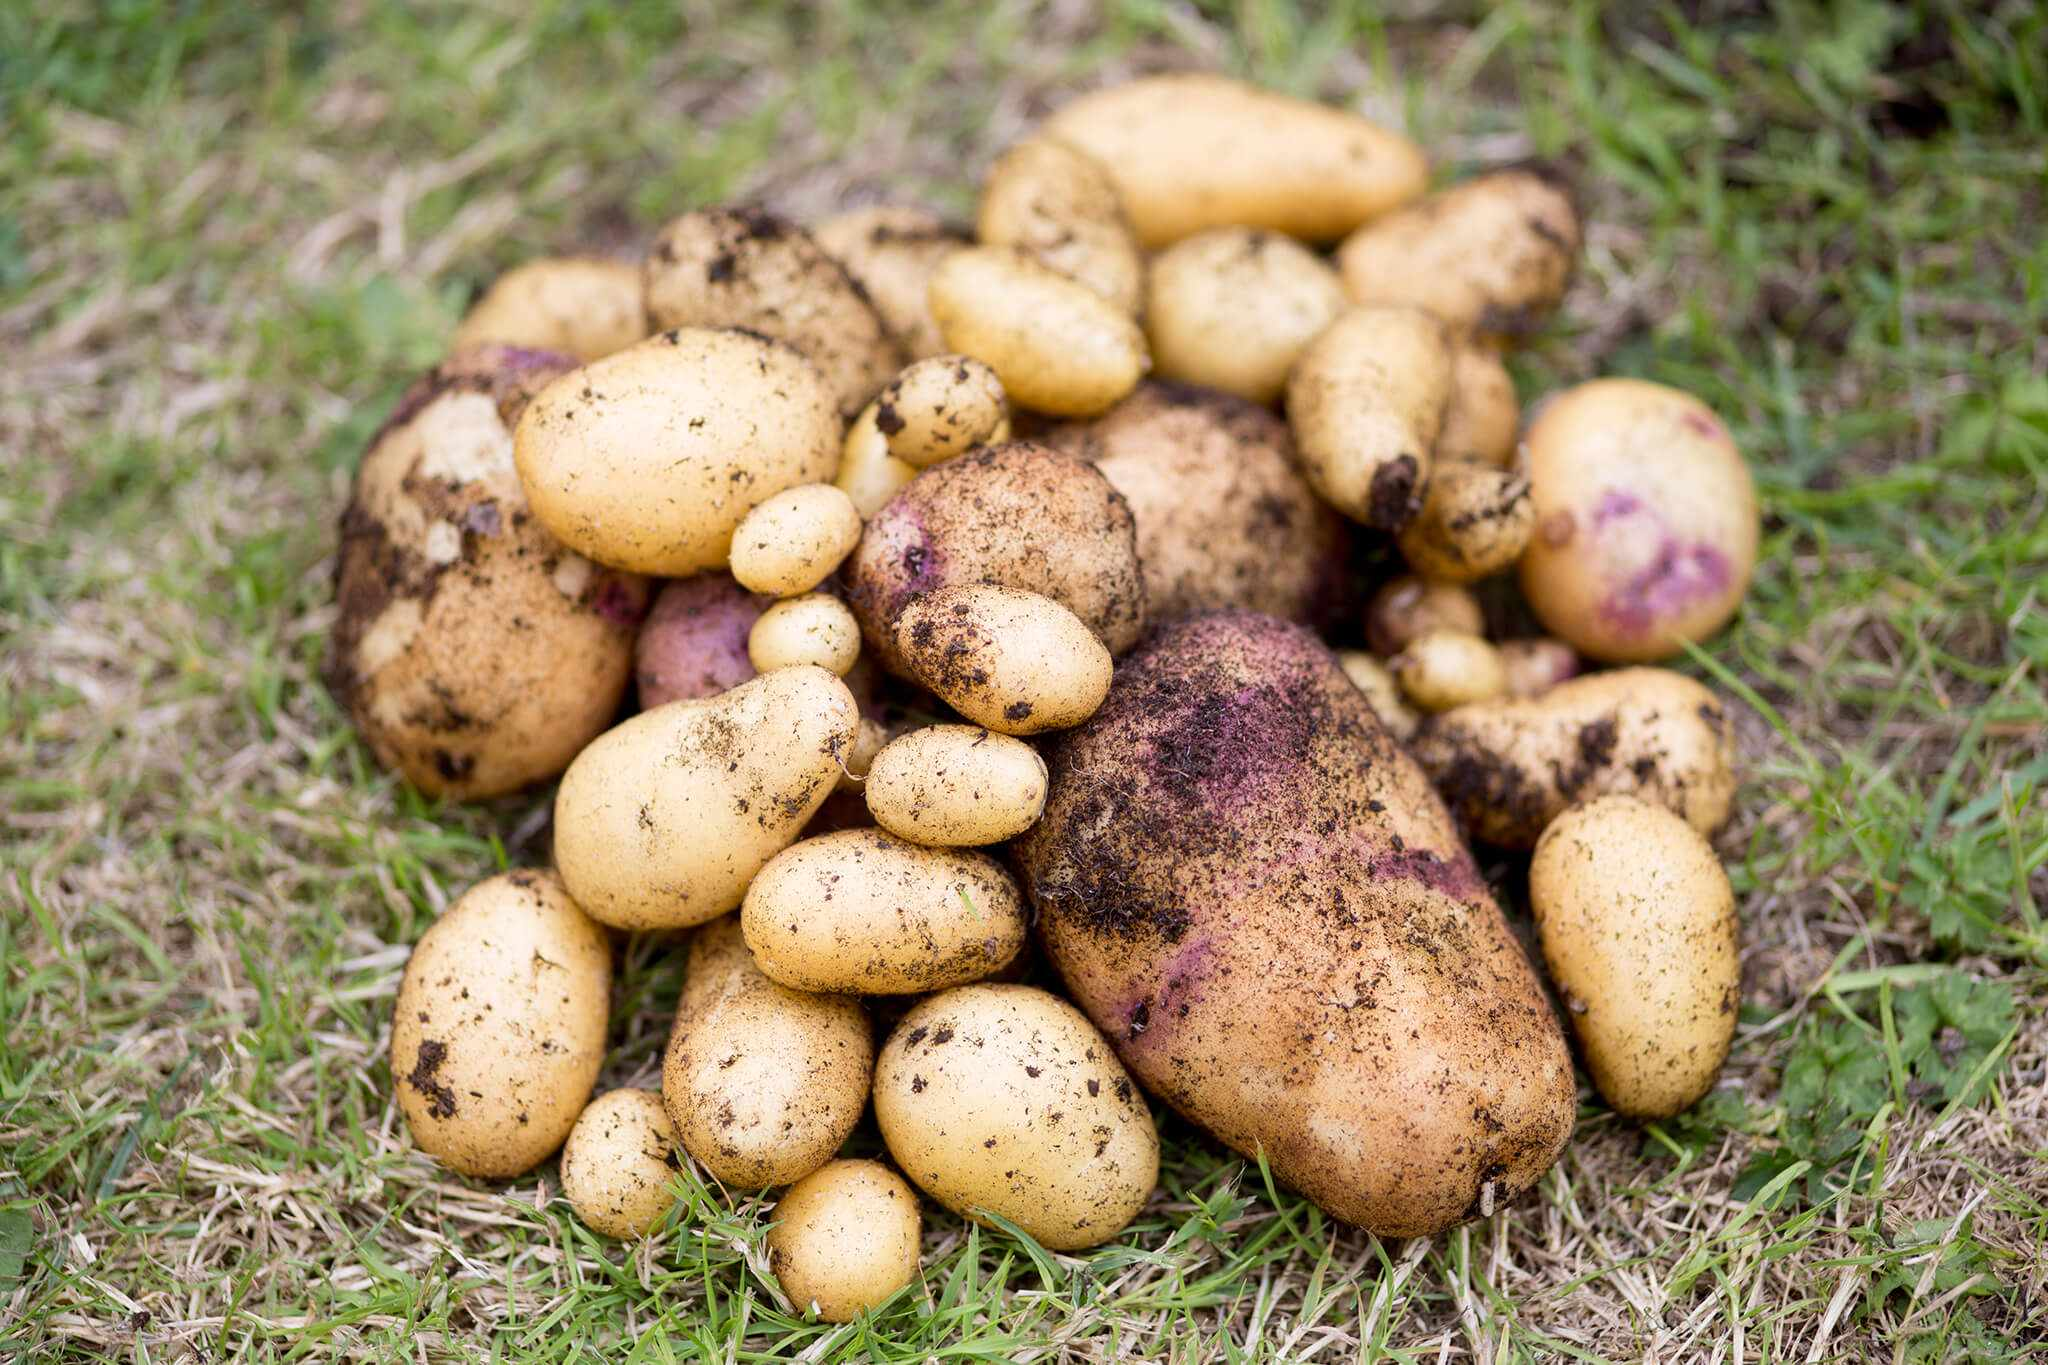 Maincrop Potatoes to Grow